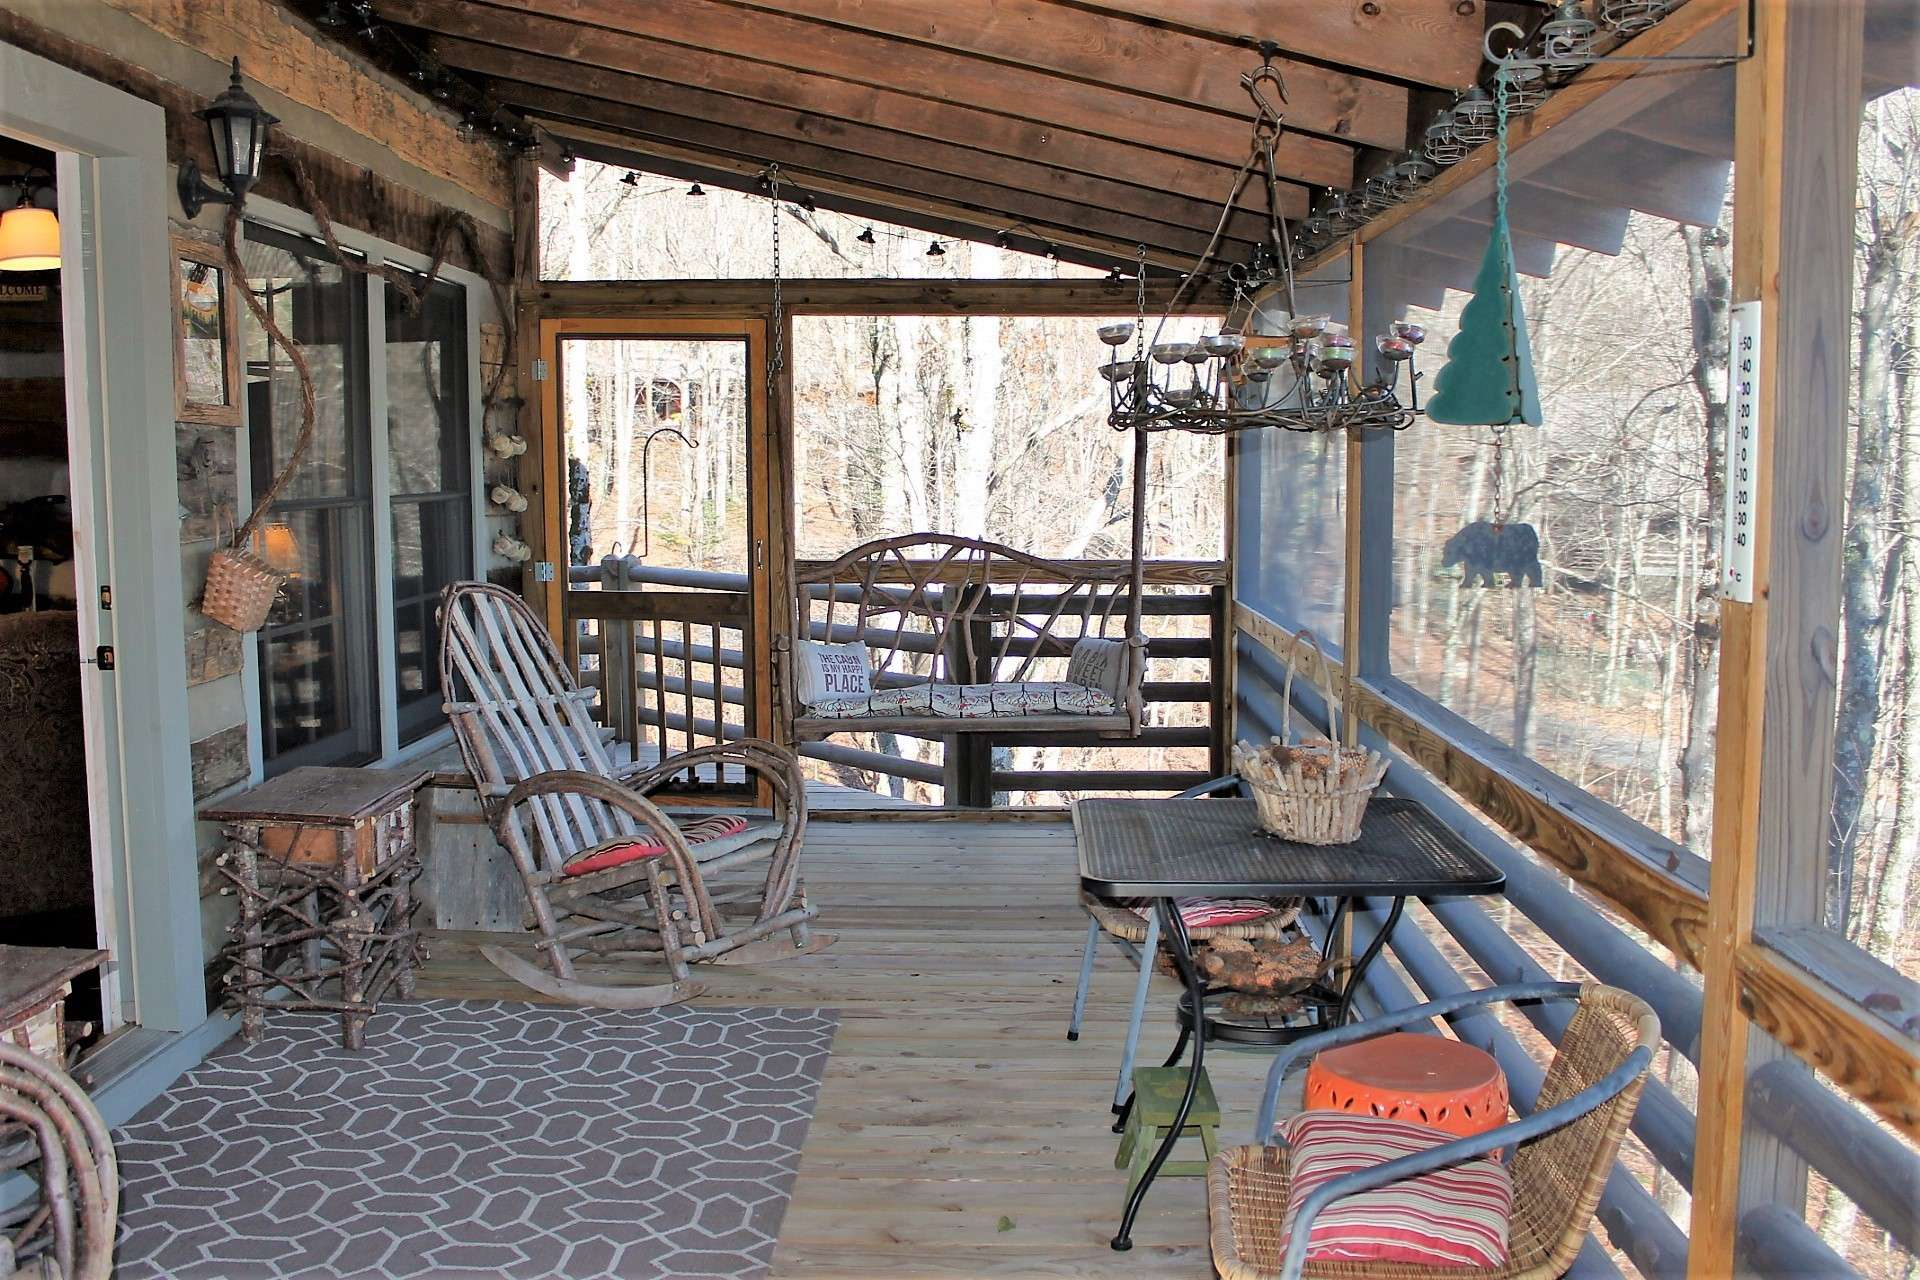 The covered screened porch is ideal for sitting in a rocker or swing sipping your favorite beverage and enjoying the cooler mountain temperatures.